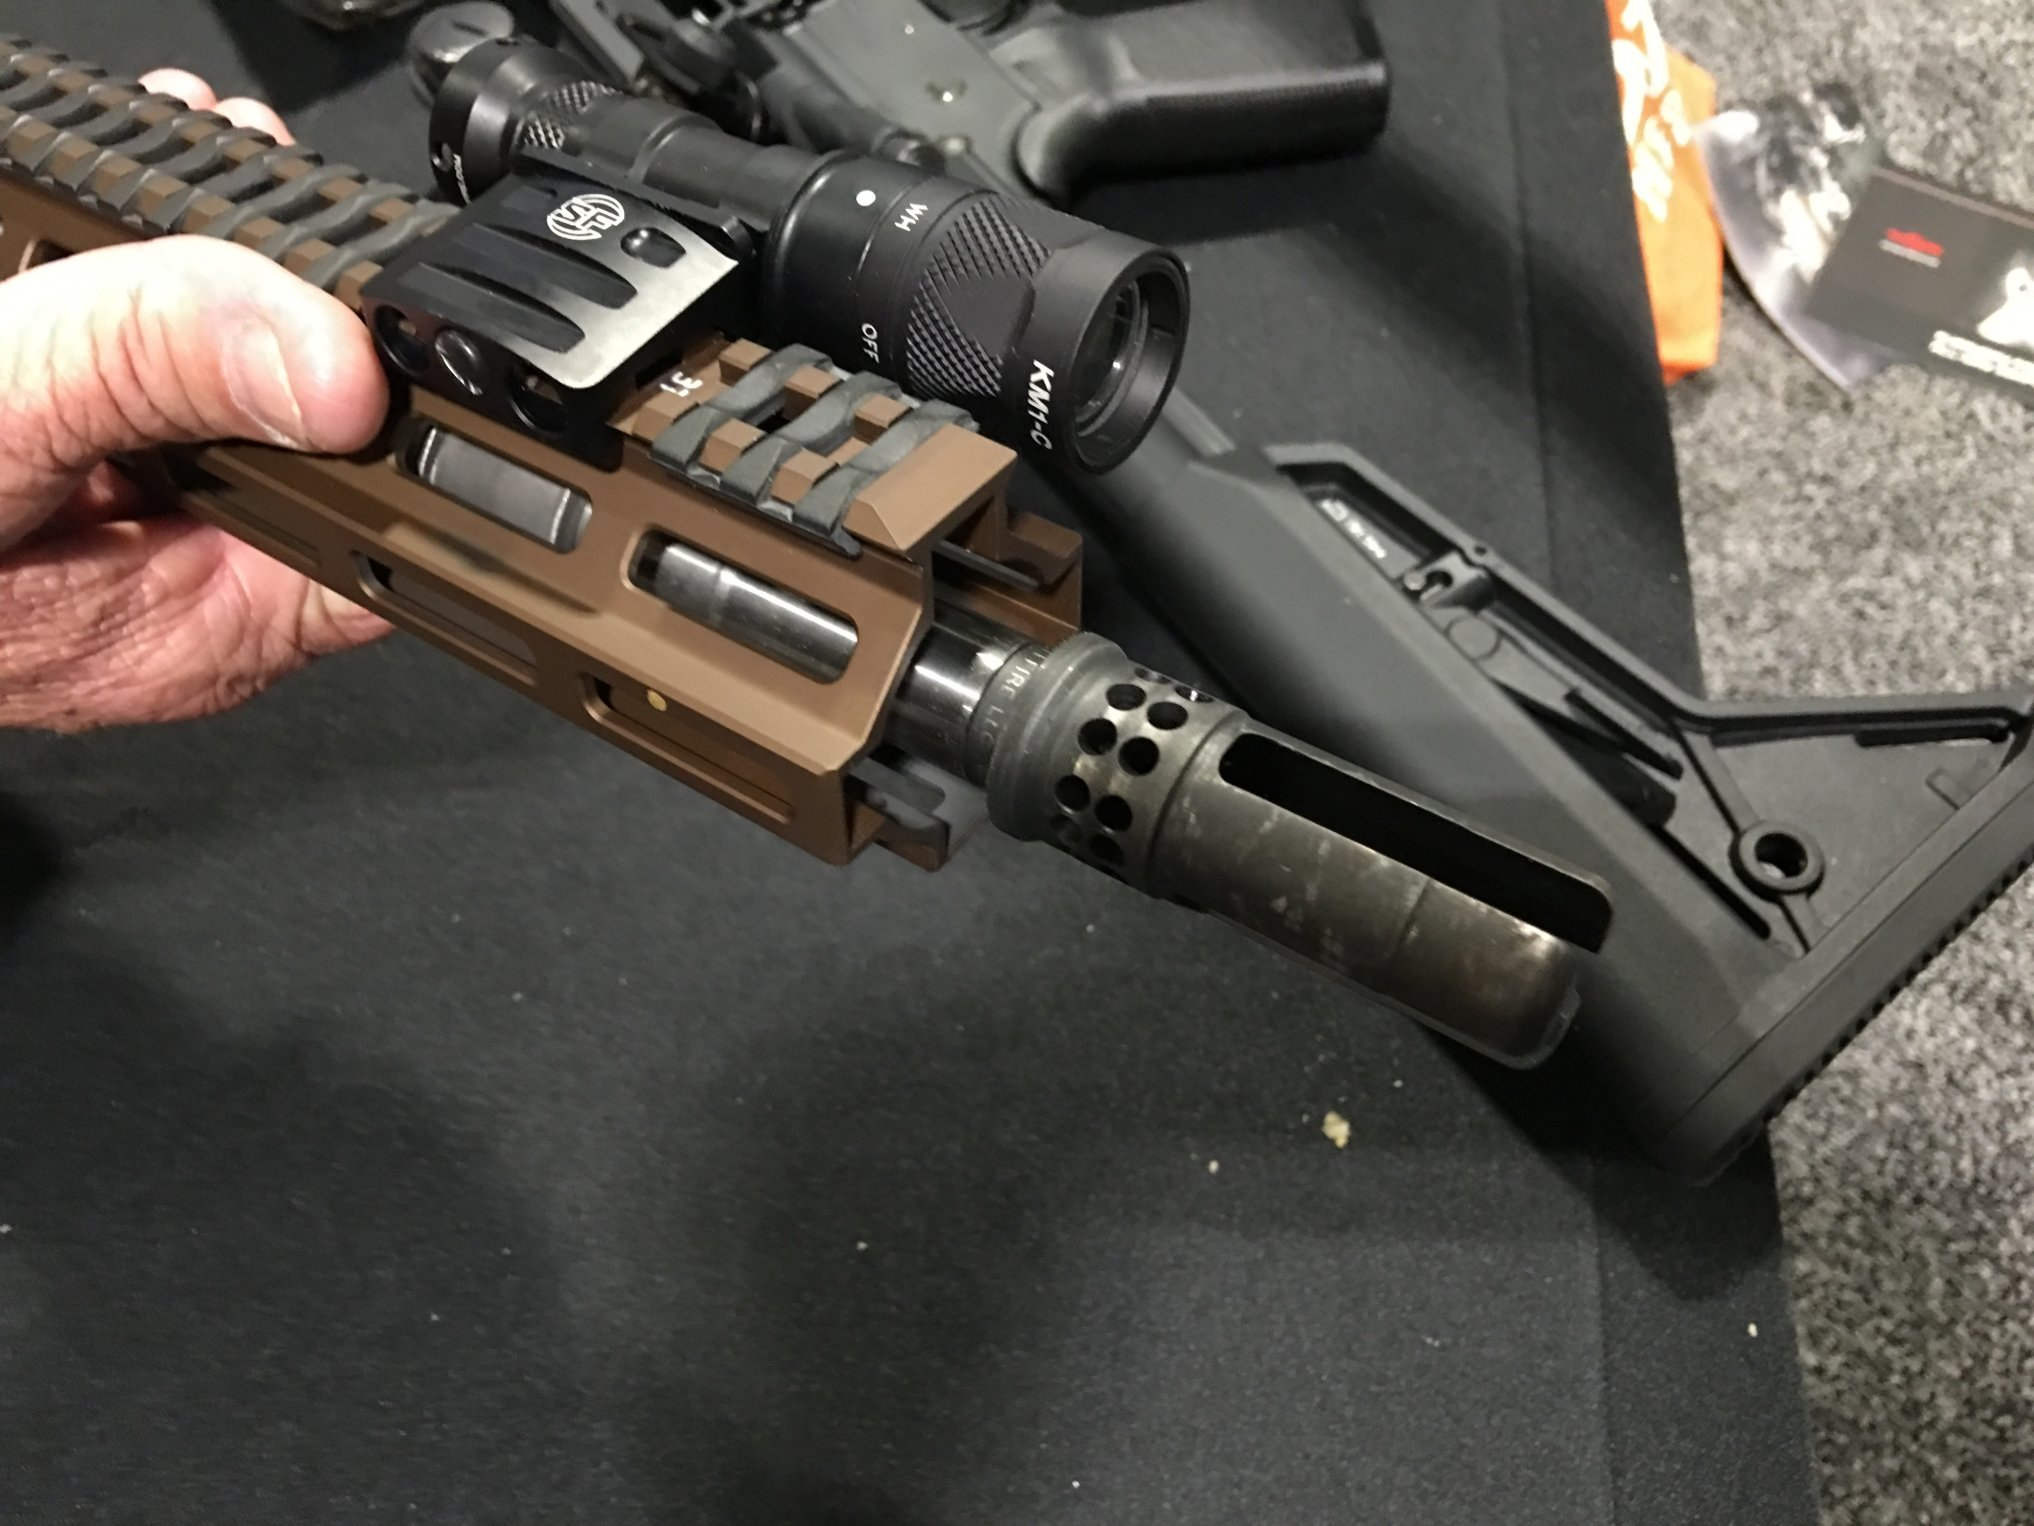 SureFire WARCOMP-556 Flash Hider Directionally-Controlled